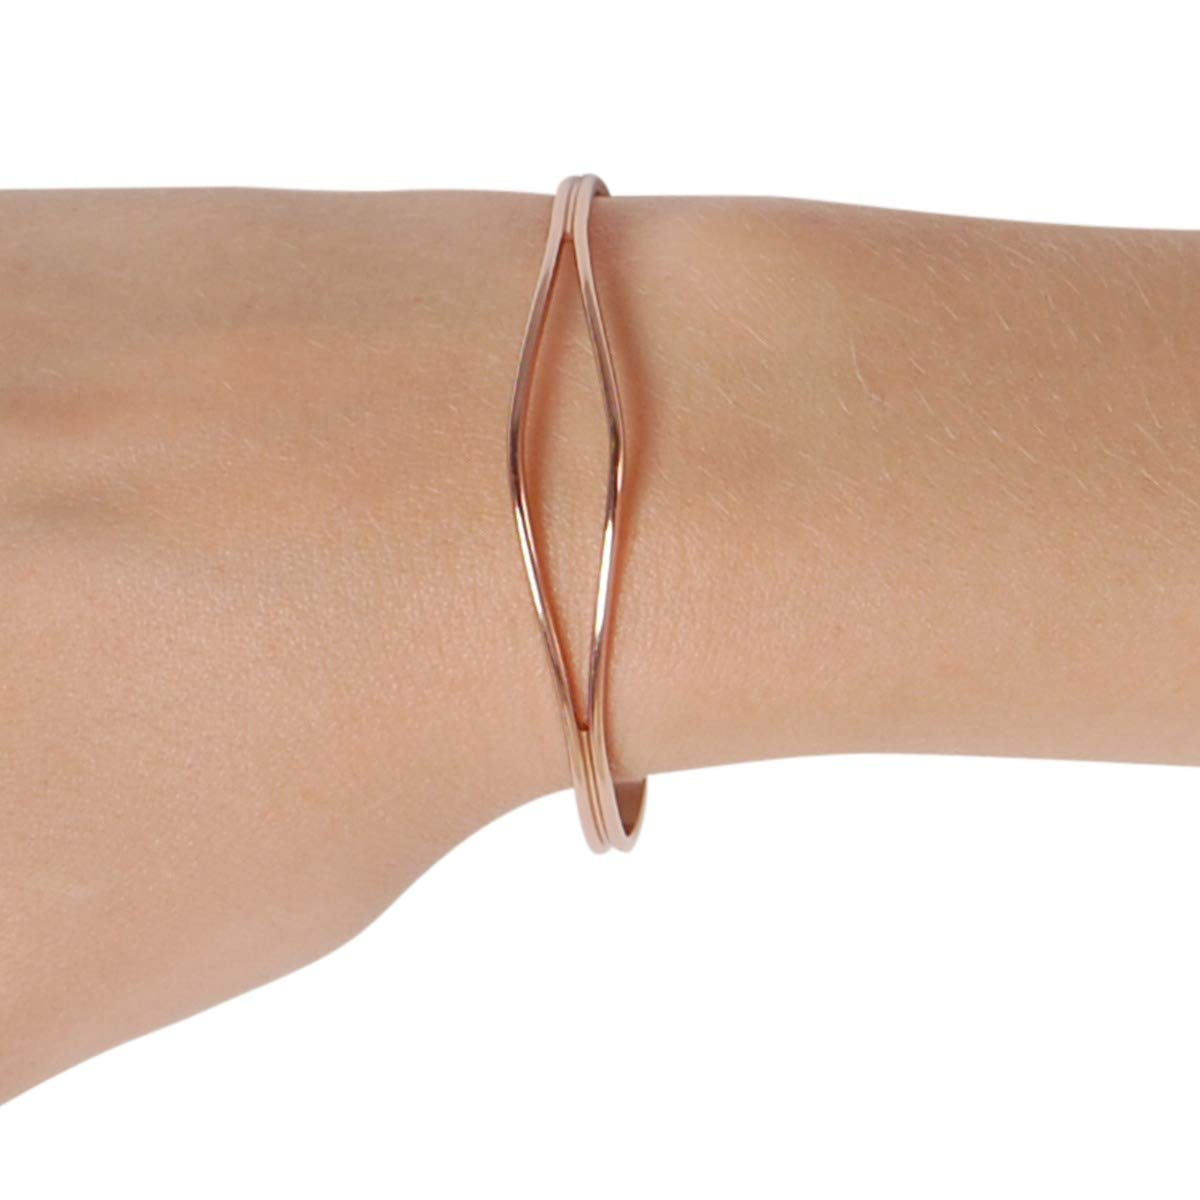 b49ad859e Amazon.com: Humble Chic Open Cuff Bracelet for Women - Hypoallergenic  Adjustable Double Skinny Bar Narrow Wire Infinity Bangle, 18K Rose -  SM/MED, ...